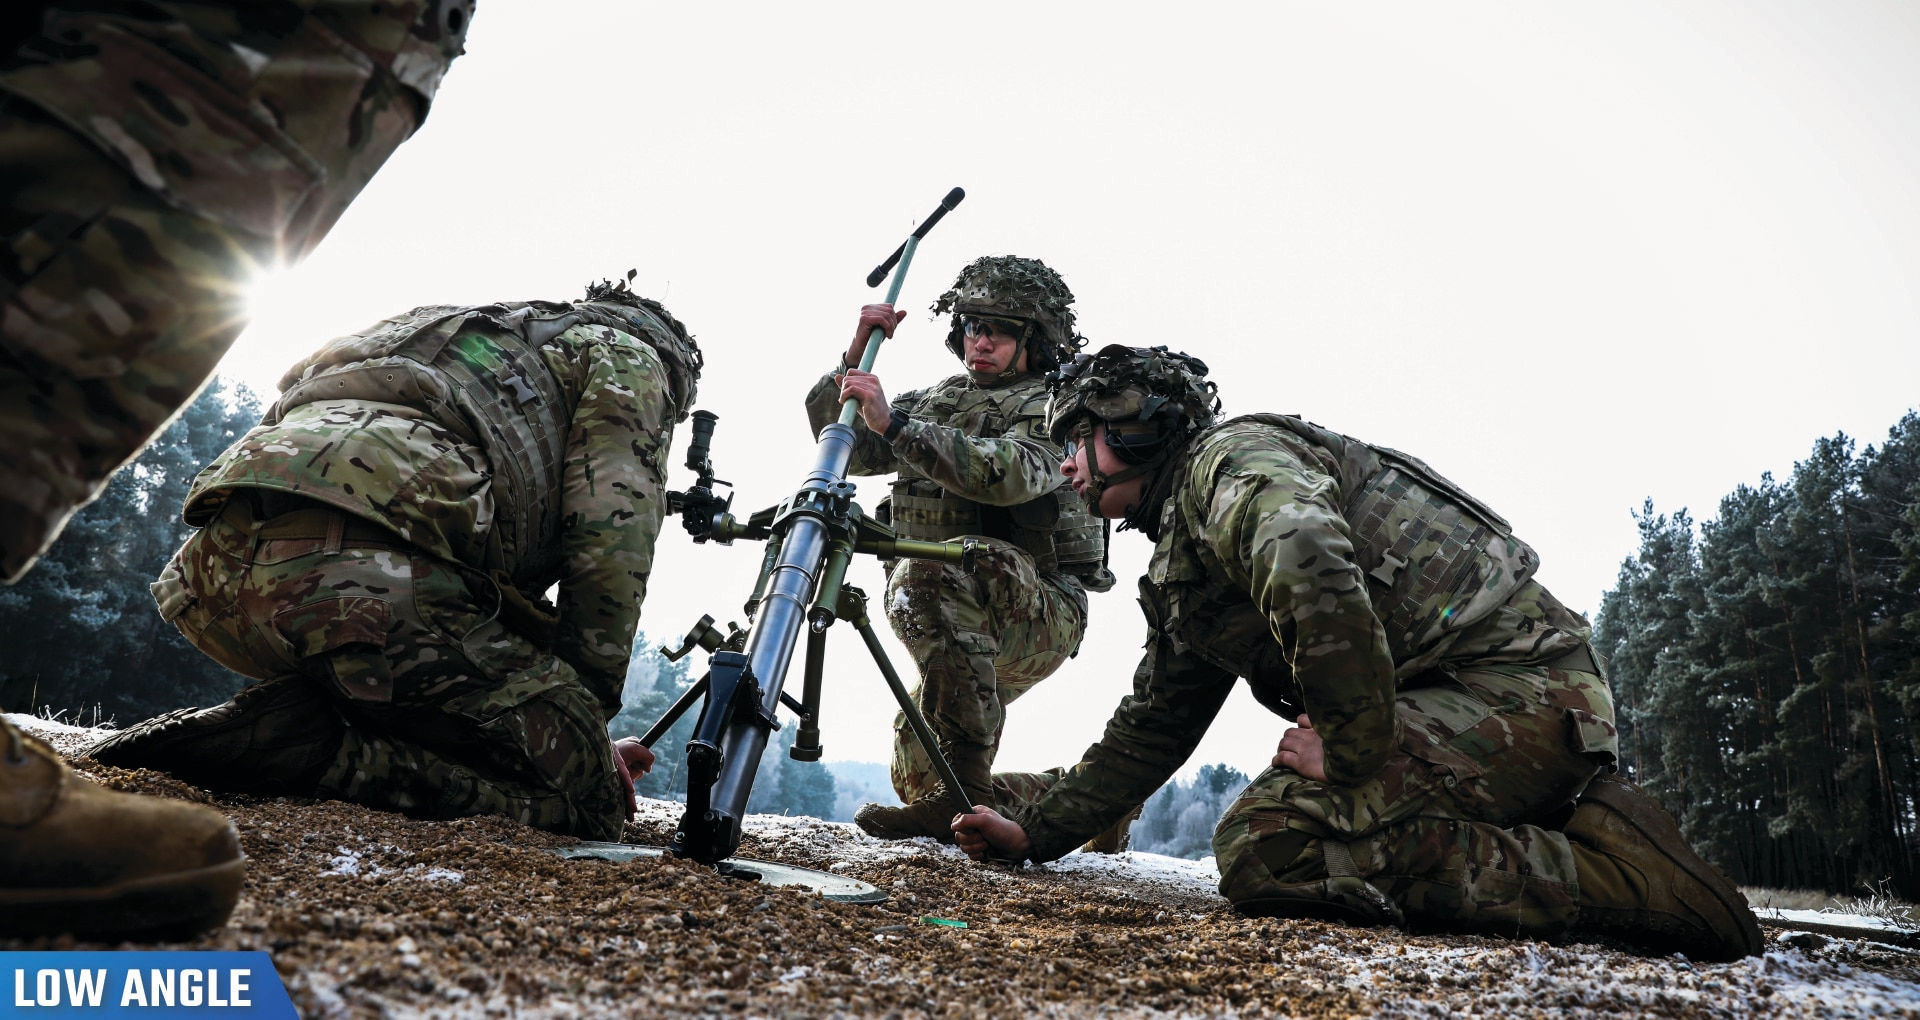 Paratroopers clean a 60mm mortar during a live-fire exercise at Grafenwoehr Training Area, Germany